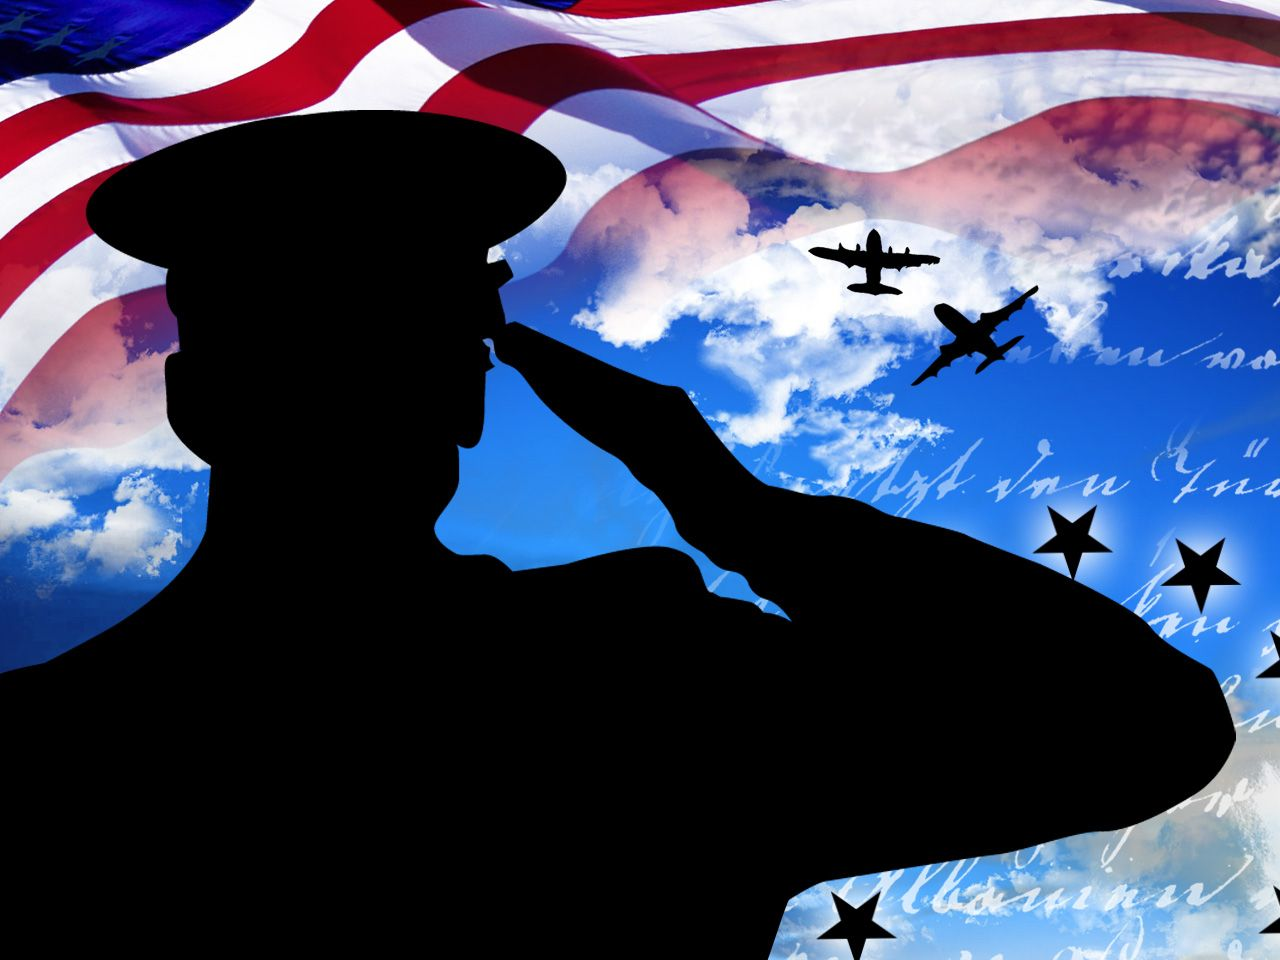 Usa Symbols Silhouette Beautiful Veterans Day Wallpaper Made From